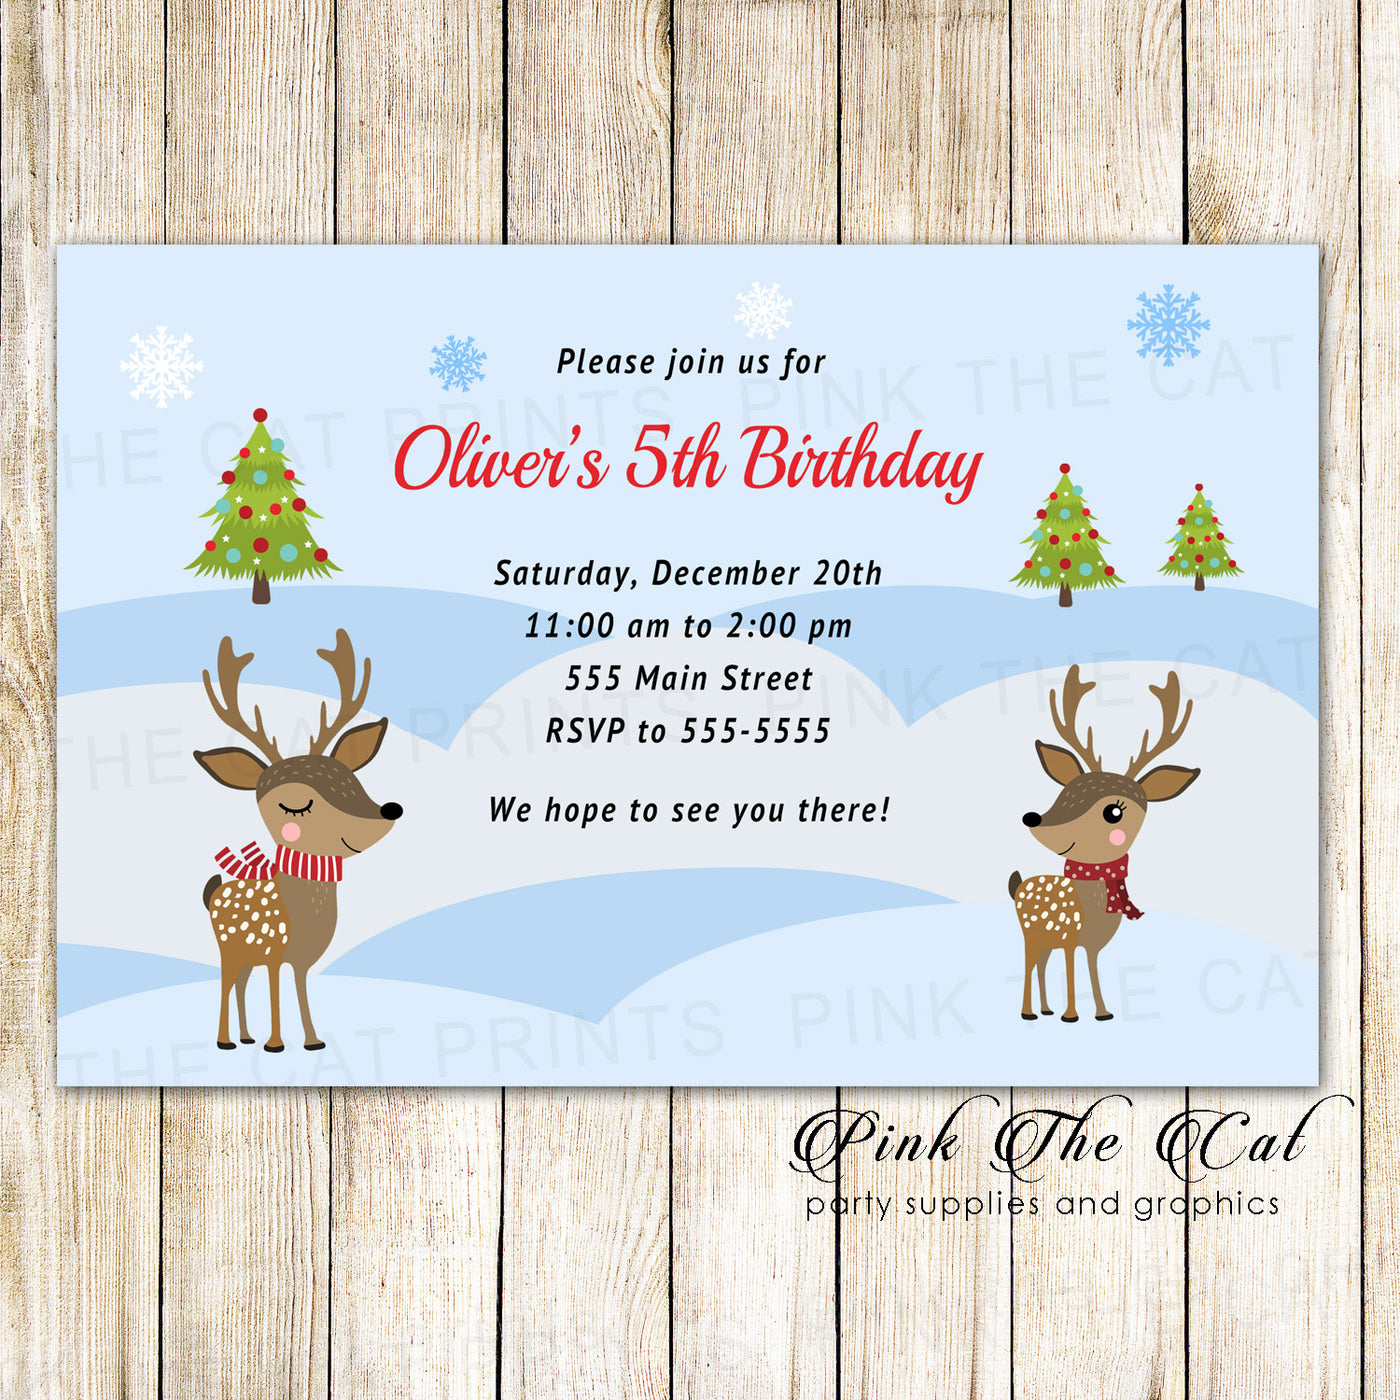 Christmas Birthday Party Invitations.30 Christmas Kids Birthday Party Invitation Raindeer Winter